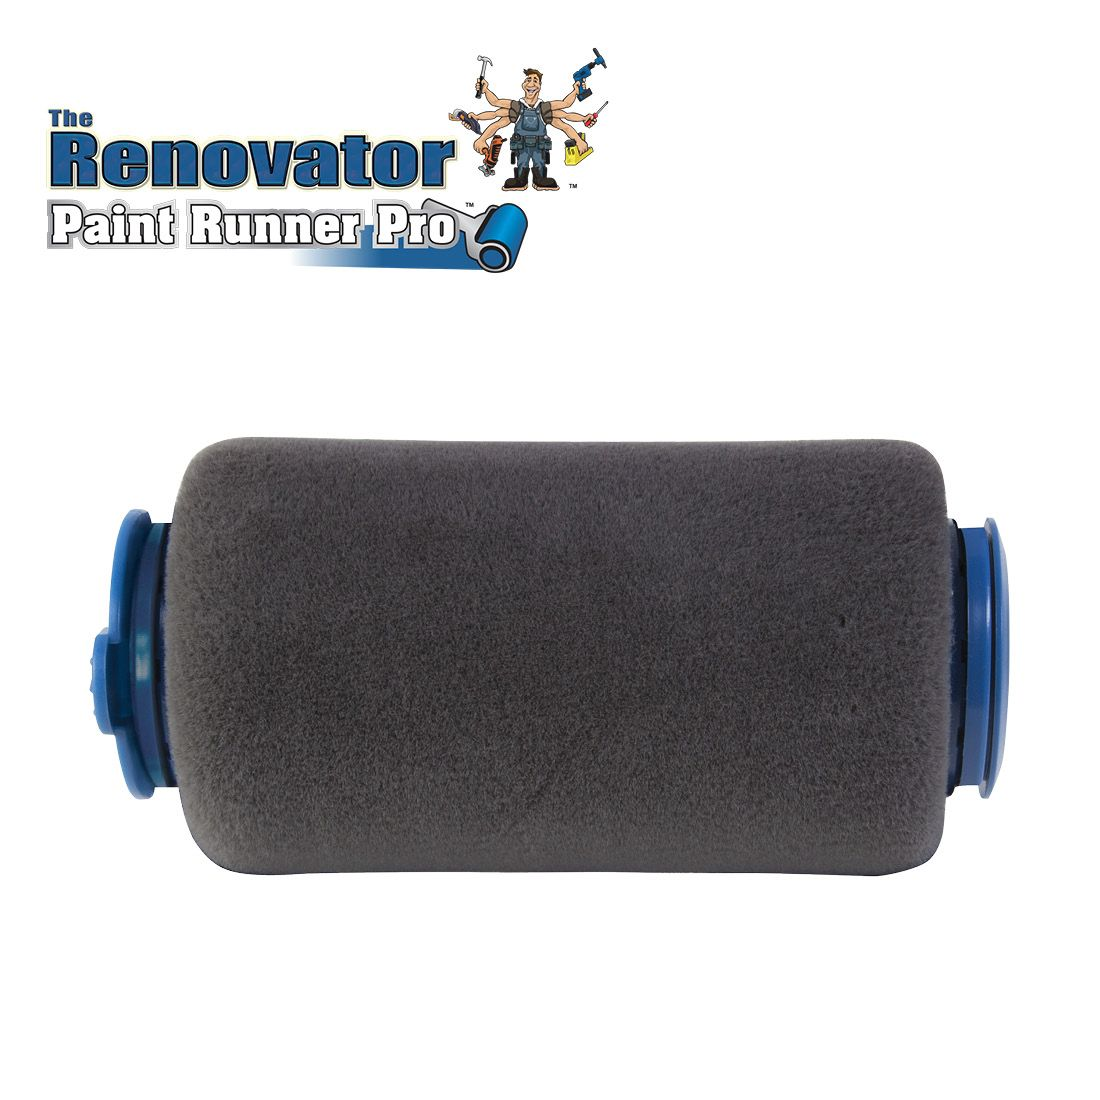 Paint Runner Pro Roller Sleeve Accessory by The Renovator